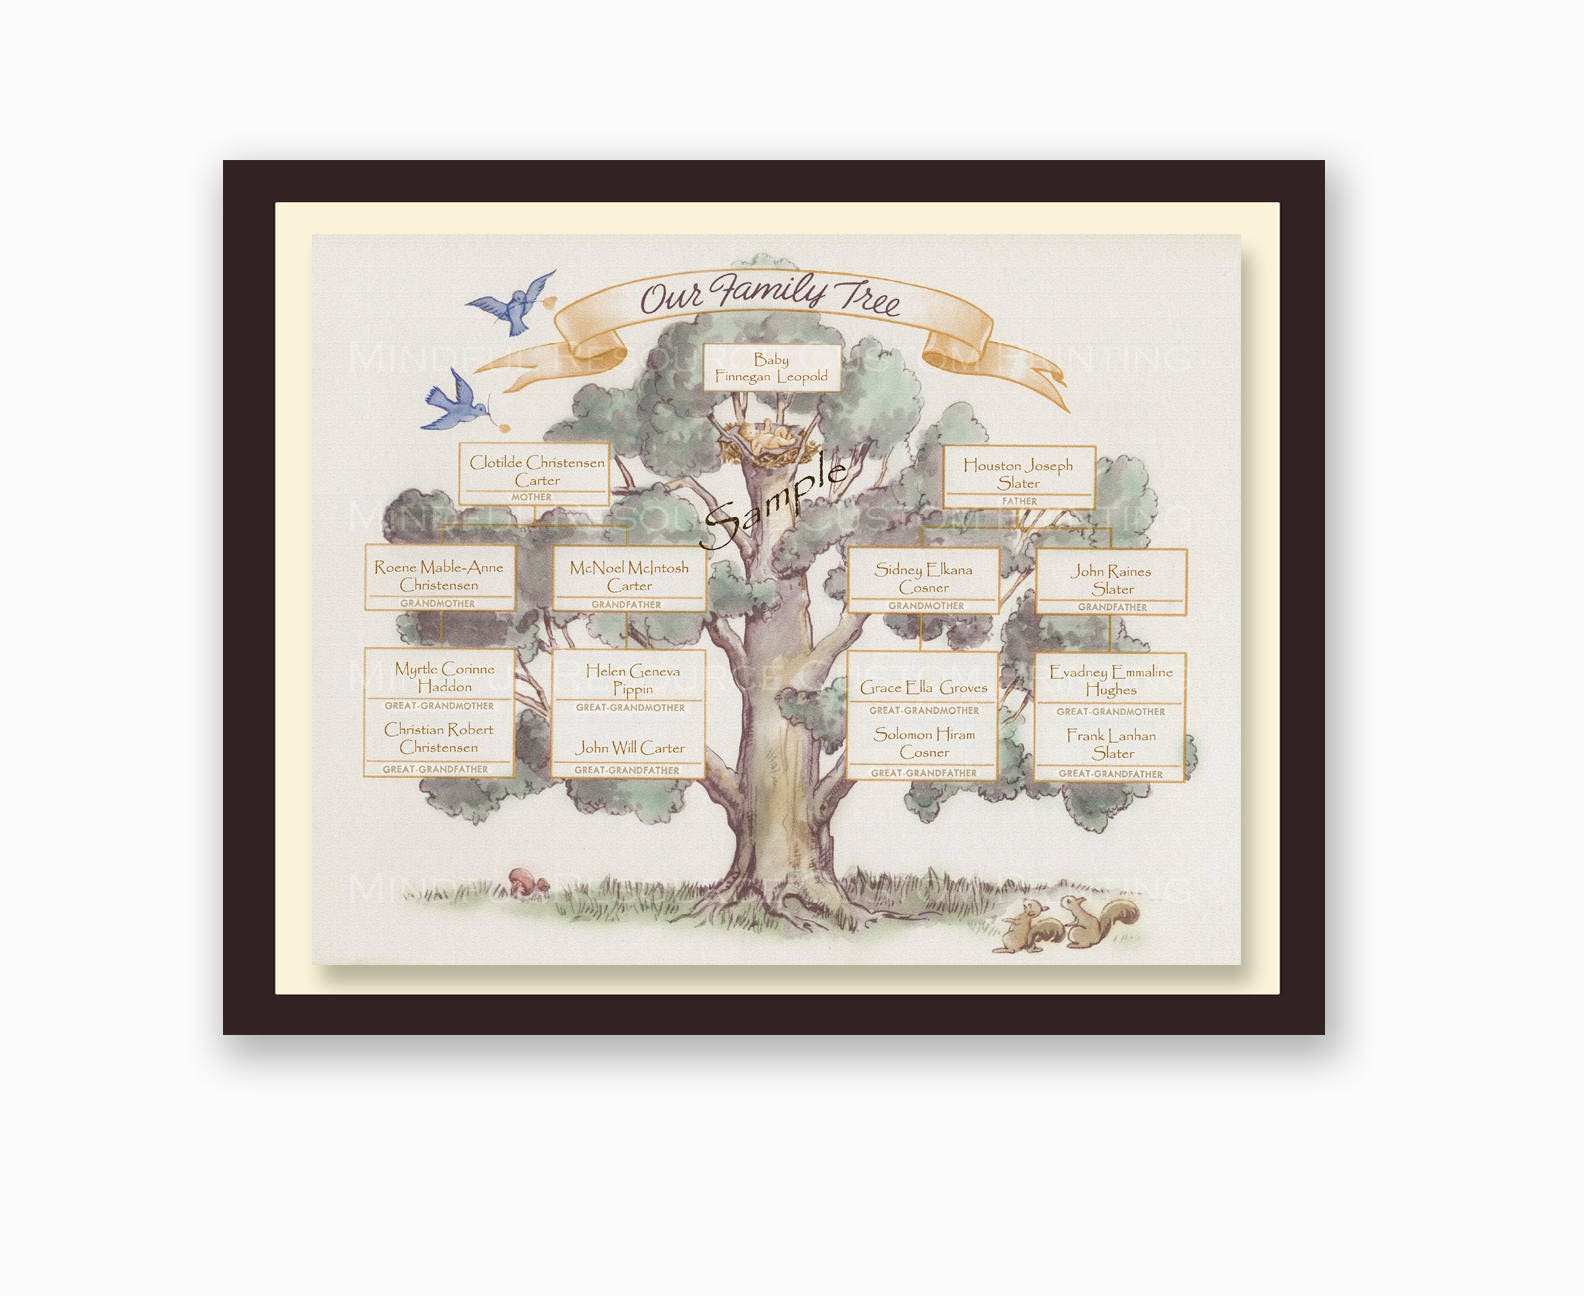 Monogrammed Baby Gifts Australia : Personalized baby gifts retro family tree